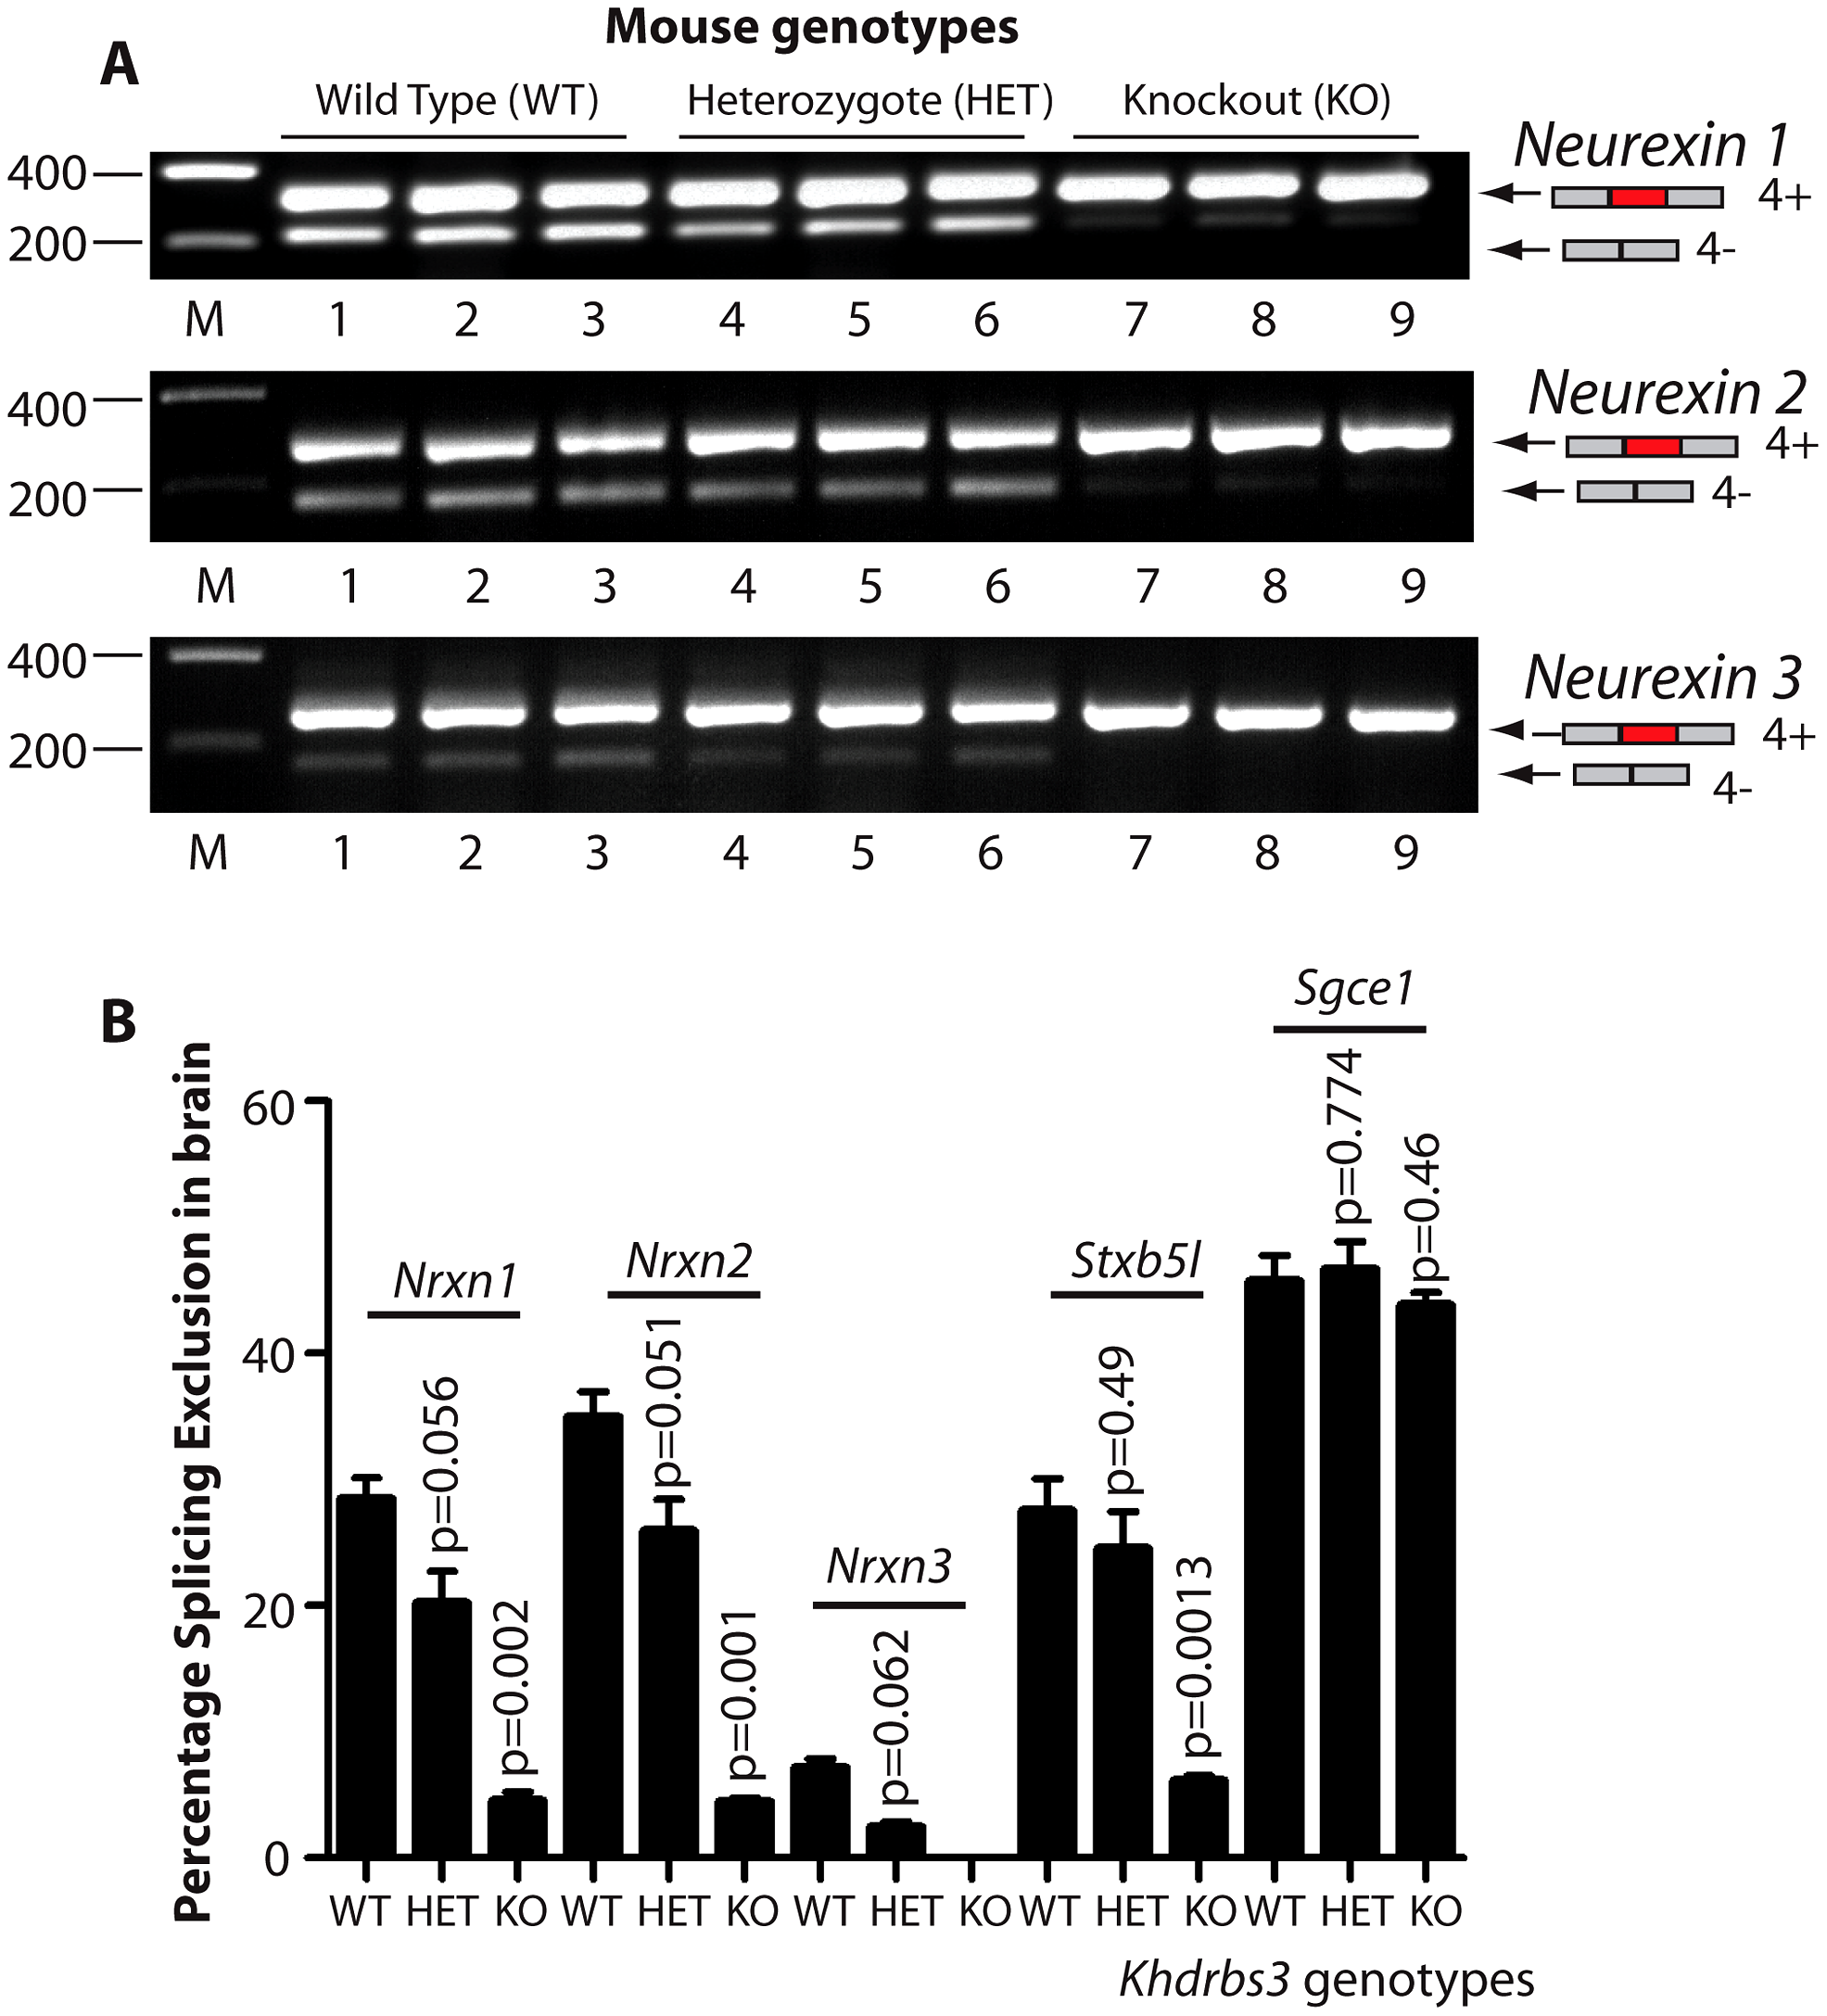 T-STAR protein is a dose-dependent splicing regulator of <i>Nrxn1-3</i> AS4 in the mouse brain.